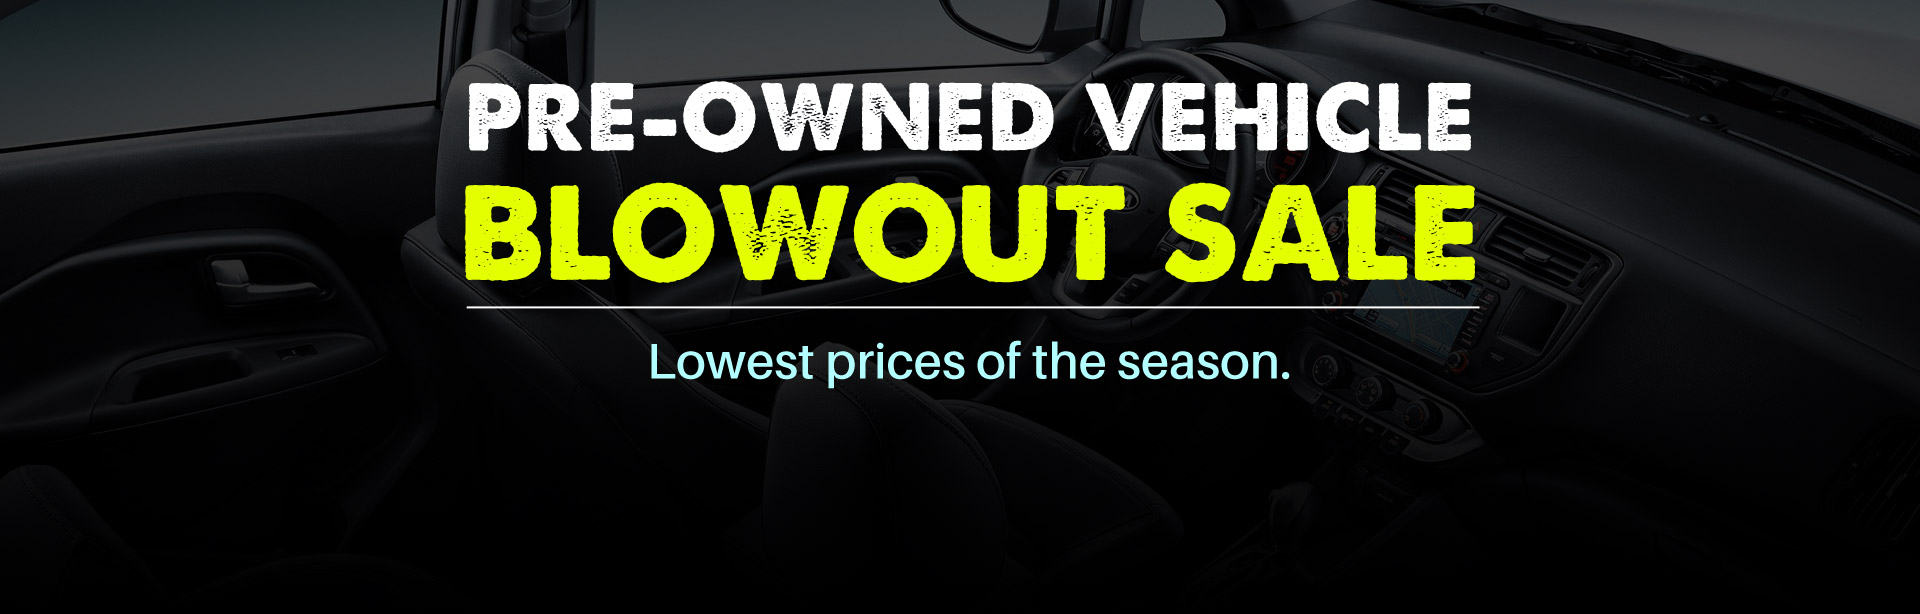 Pre-Owned Vehicle Blowout Sale